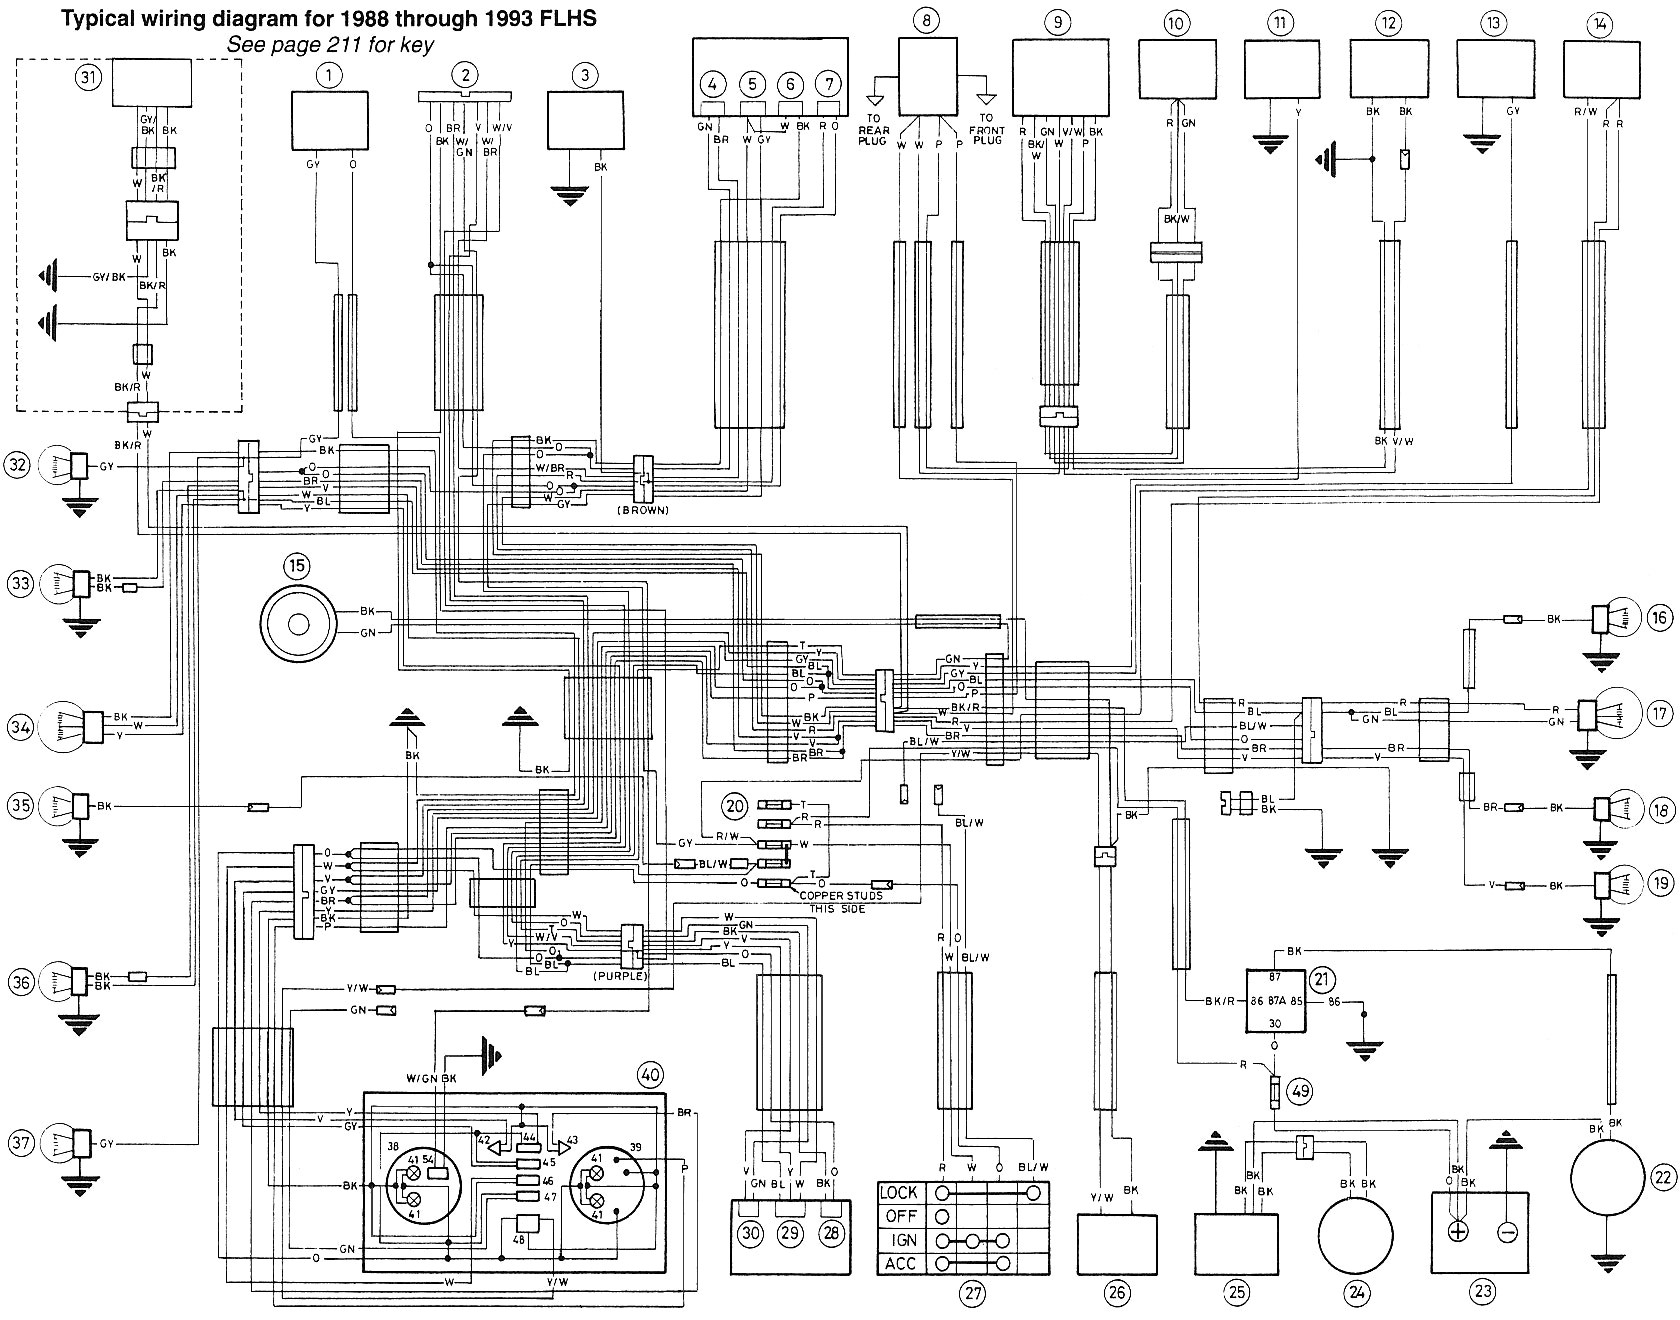 1999 Harley Wiring Diagram - Data Diagram Schematic on harley ignition switch wiring diagram, harley sprint wiring diagram, basic harley wiring diagram, knucklehead wiring diagram, harley davidson wiring diagram, harley shovelhead wiring diagram, harley evo motor diagram, harley evo clutch diagram, harley evo transmission diagram, harley evo starter diagram, lifan engine wiring diagram, ignition coil wiring diagram, harley evo coil wiring, harley sportster wiring diagram, panhead wiring diagram, harley evo oil diagram, ironhead wiring diagram,